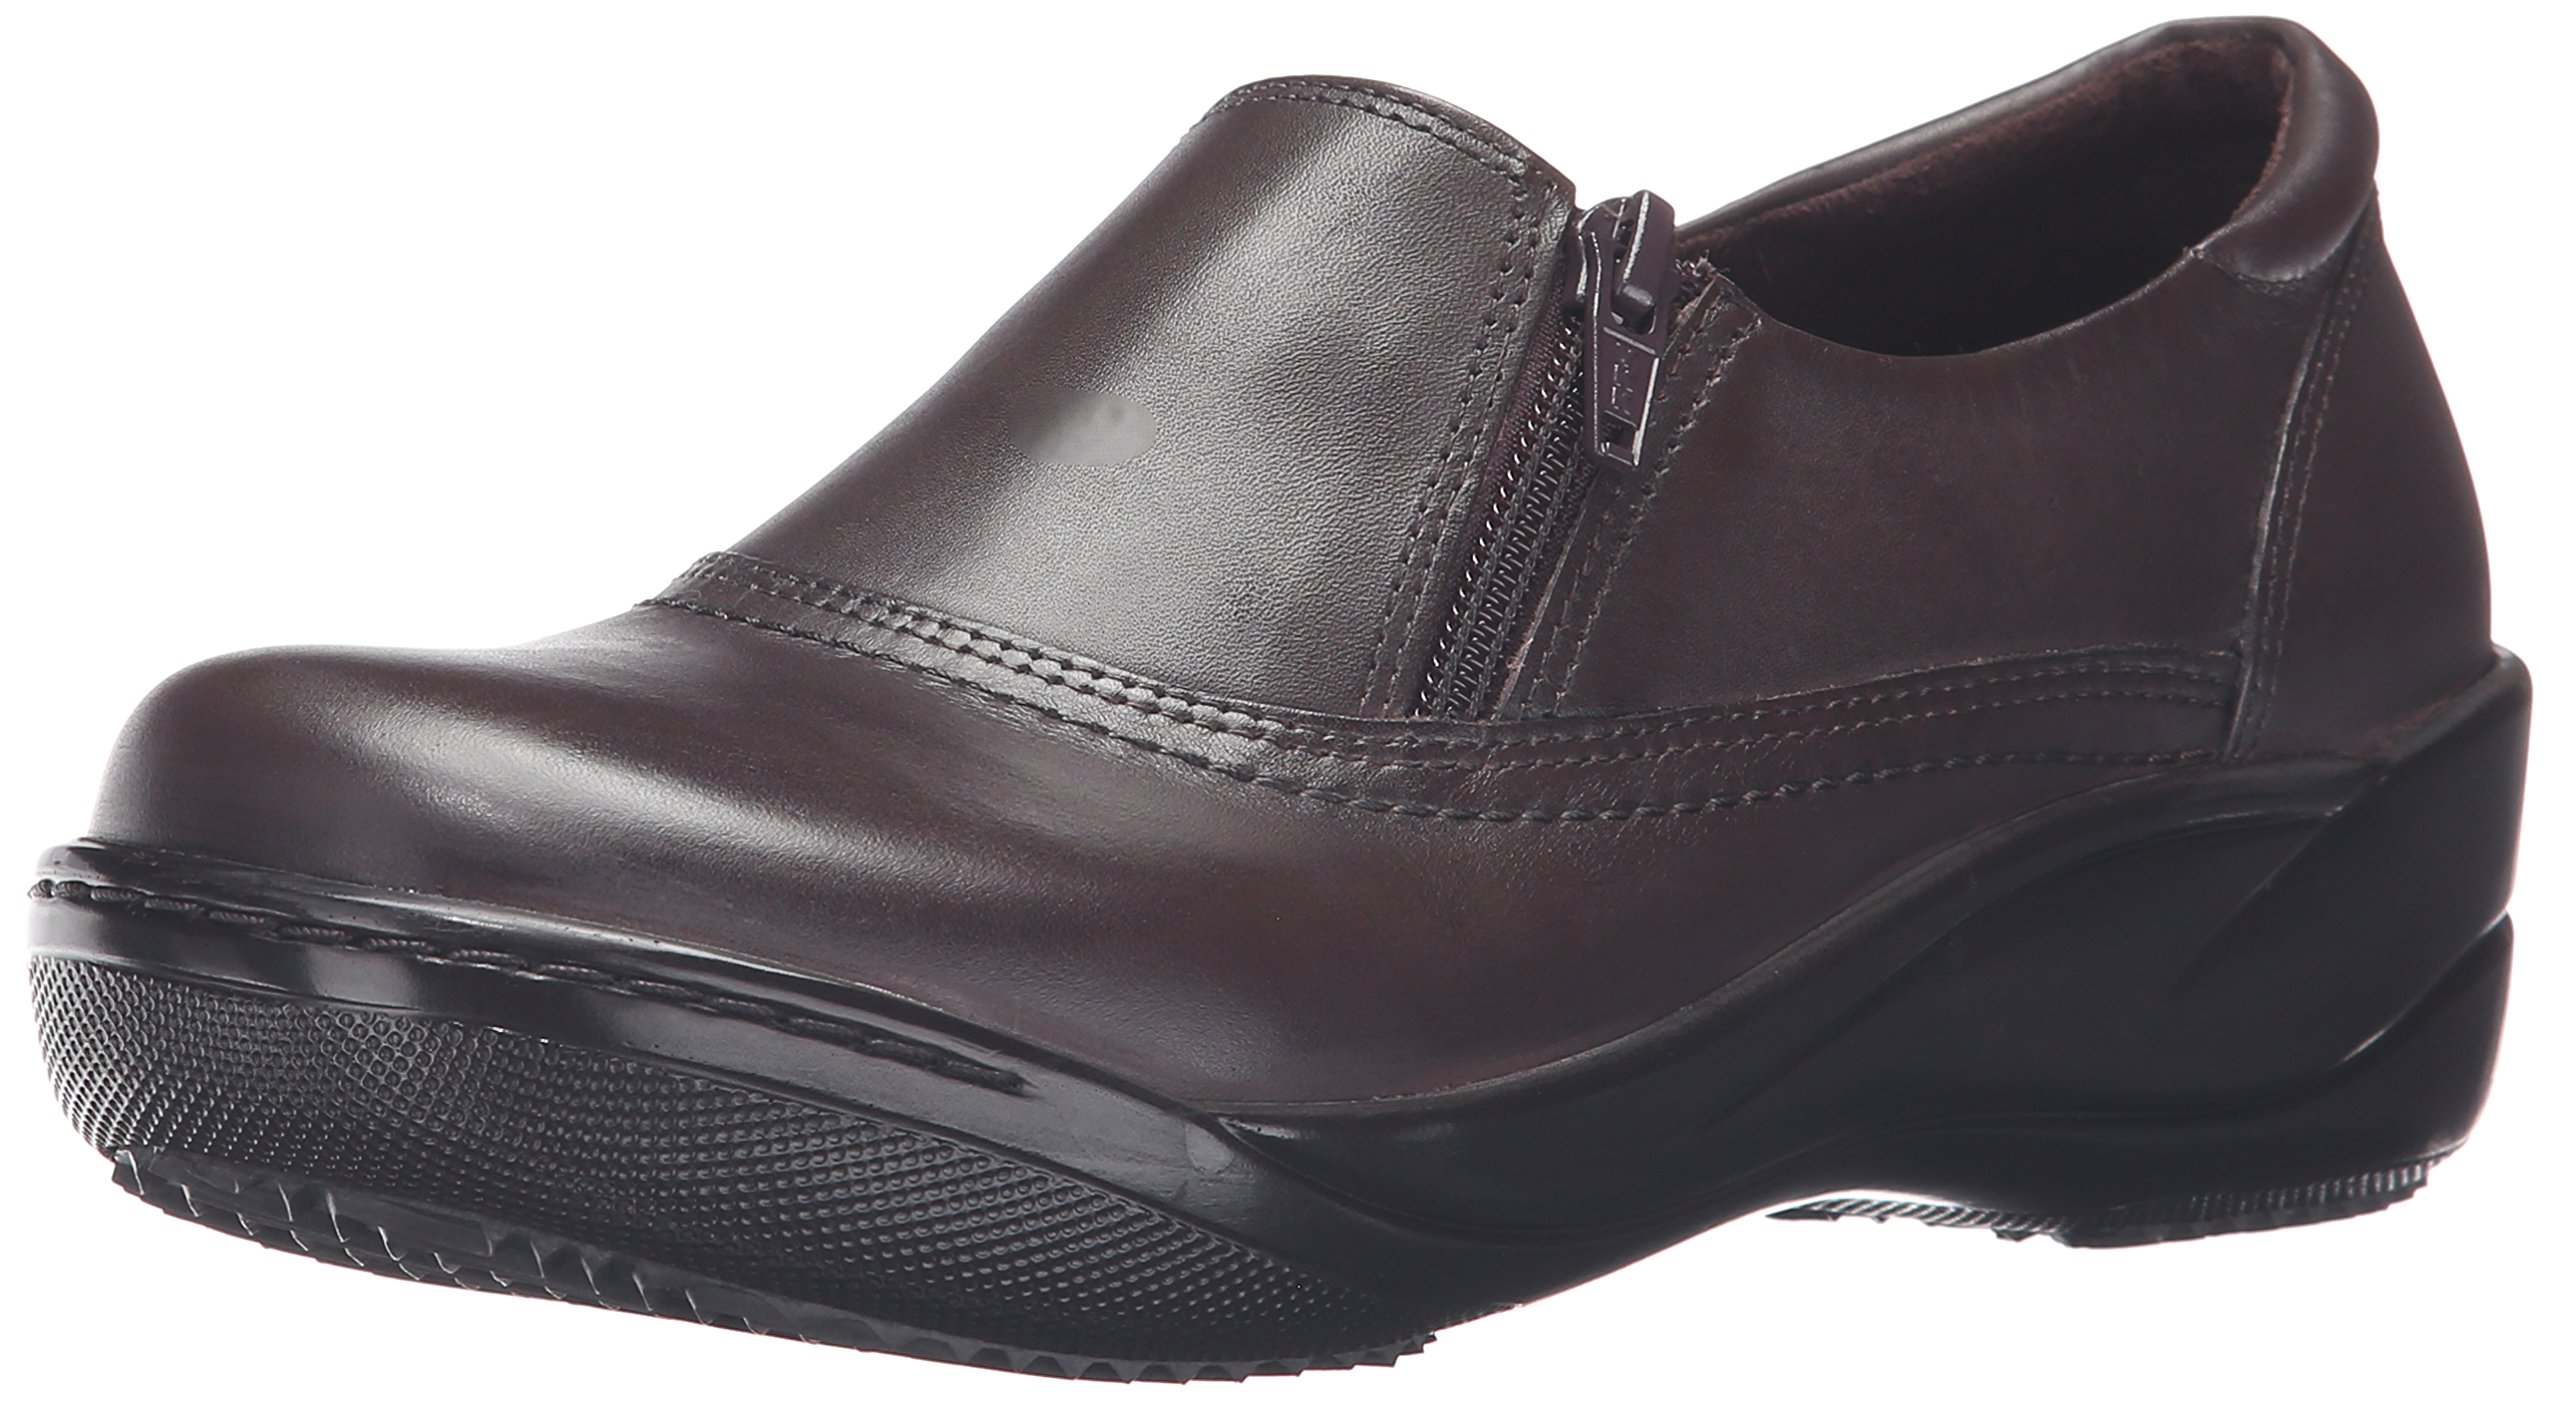 Cherokee Women's Maggie Health Care & Food Service Shoe, Brown, 9 M US